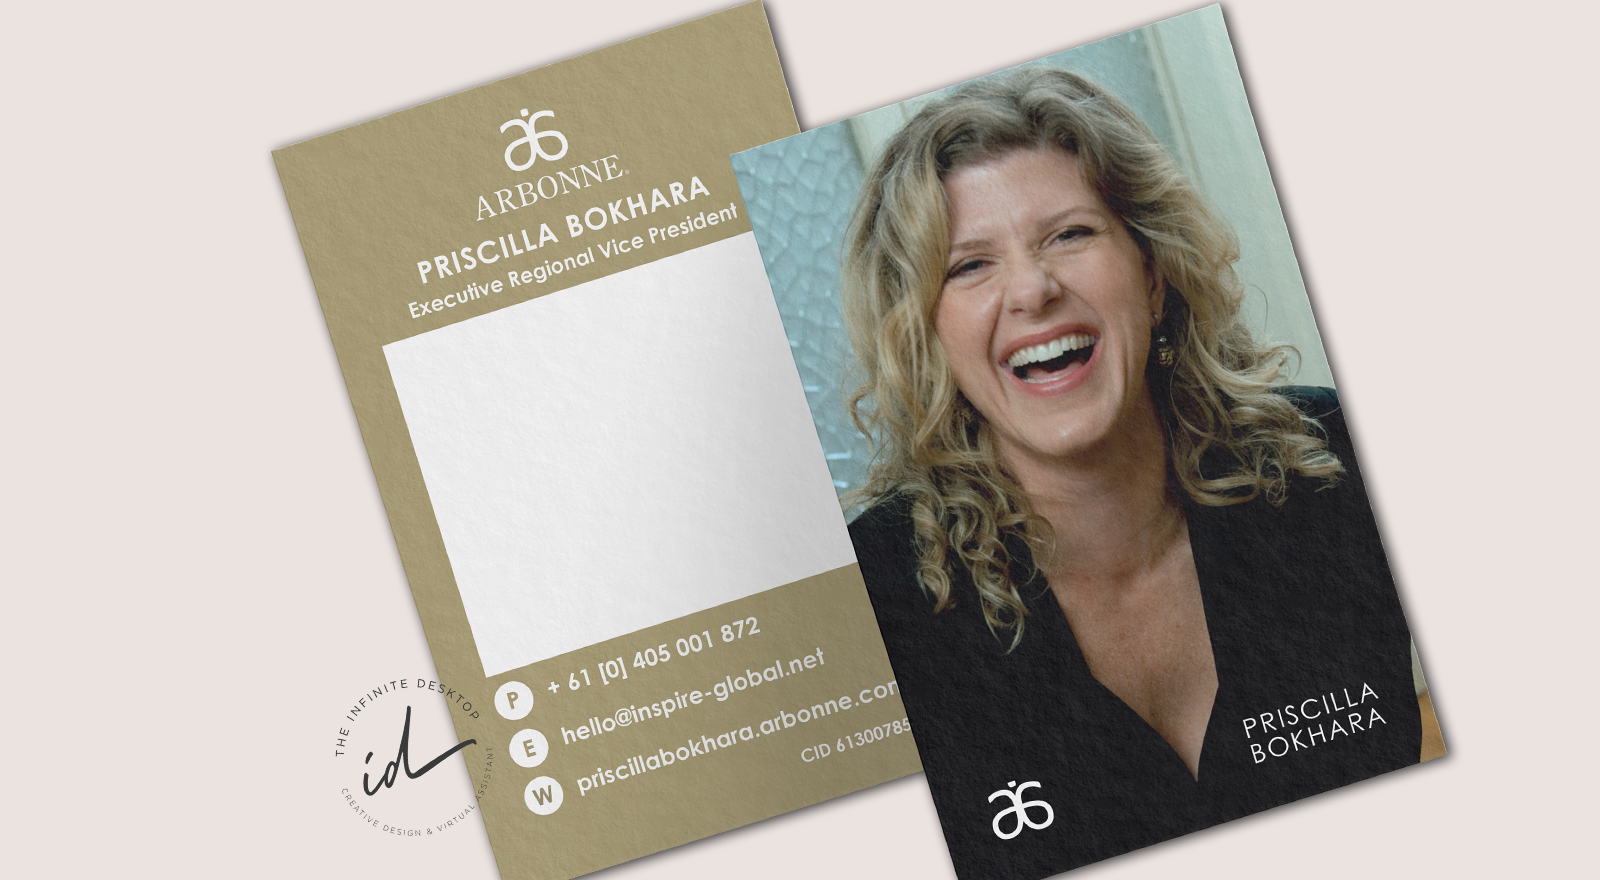 Priscilla Bokhara Independent Consultant for Arbonne Business Card design